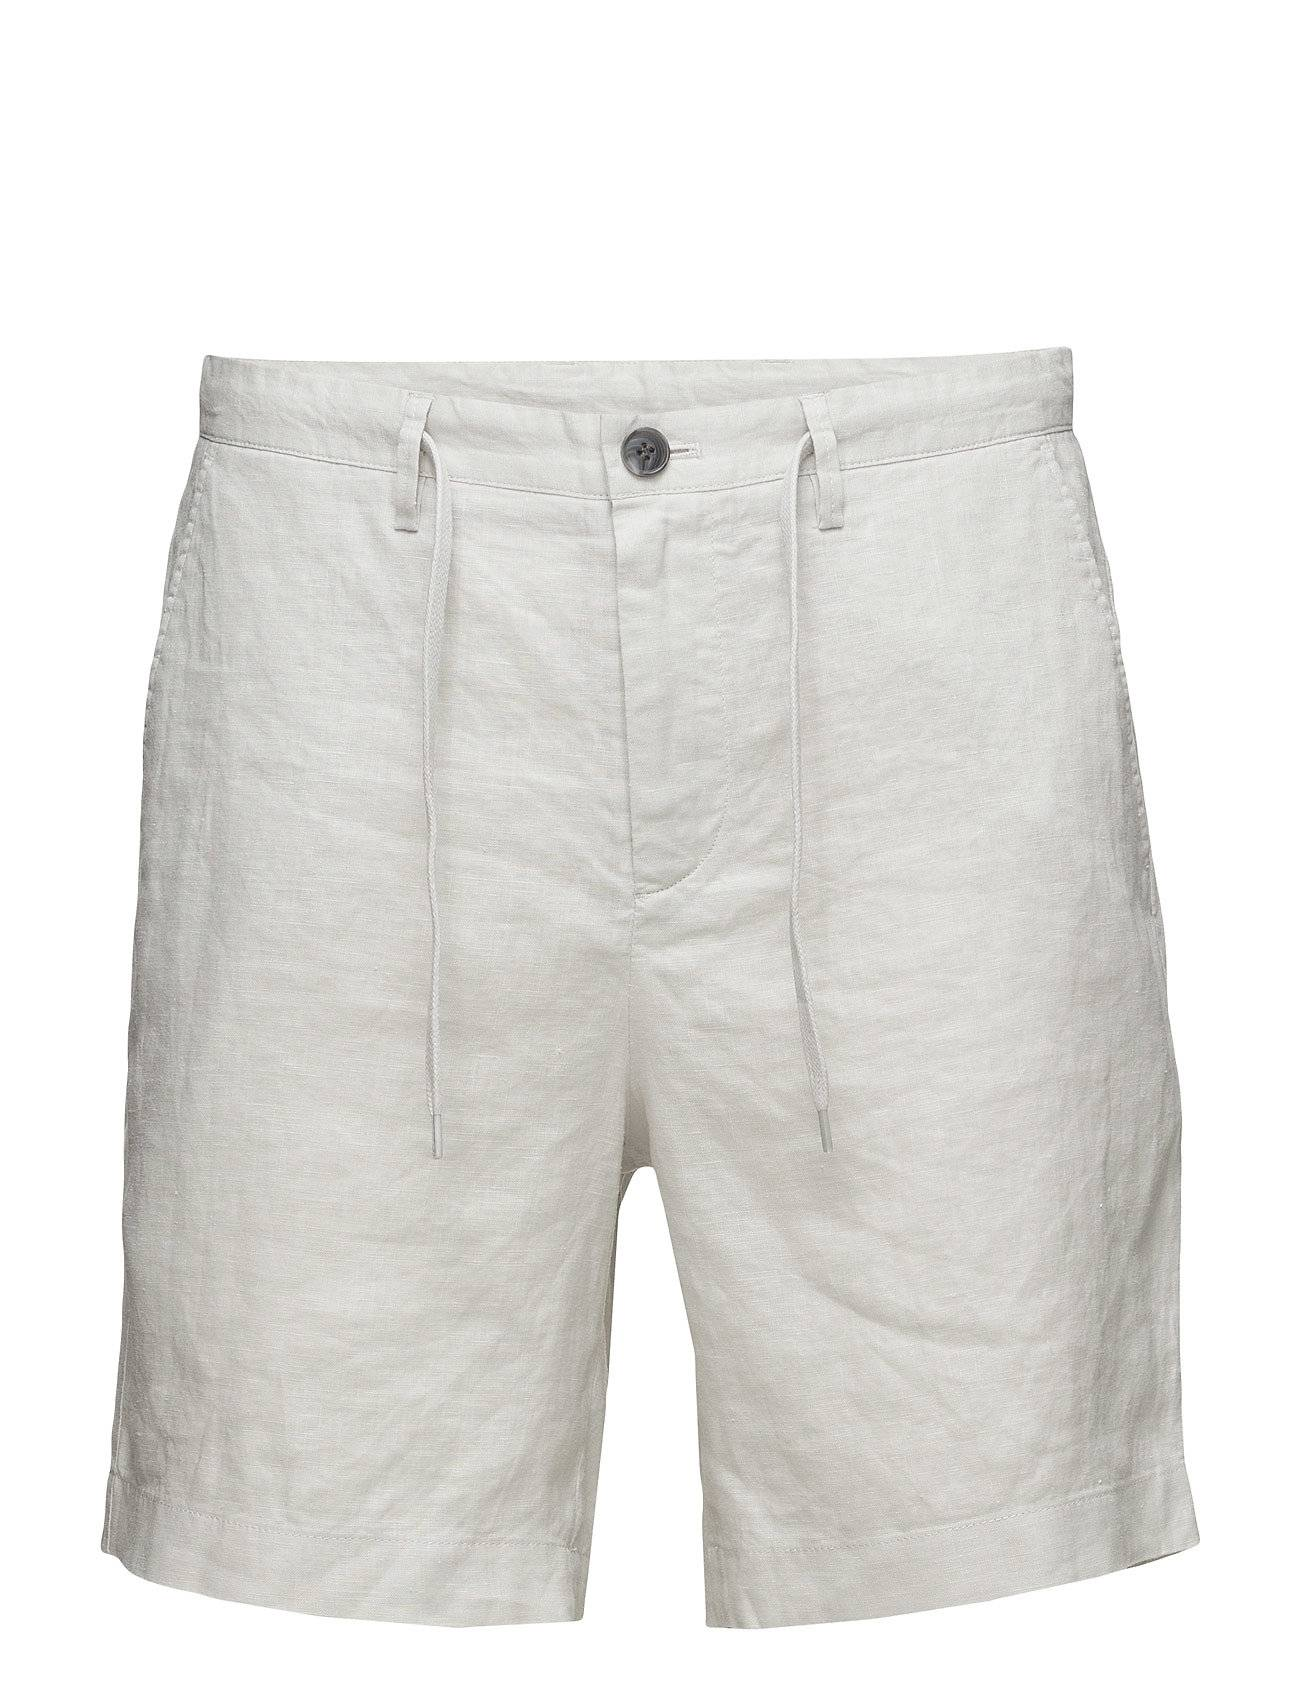 Selected Homme Shdkai-Tapered Shorts Tpd-R